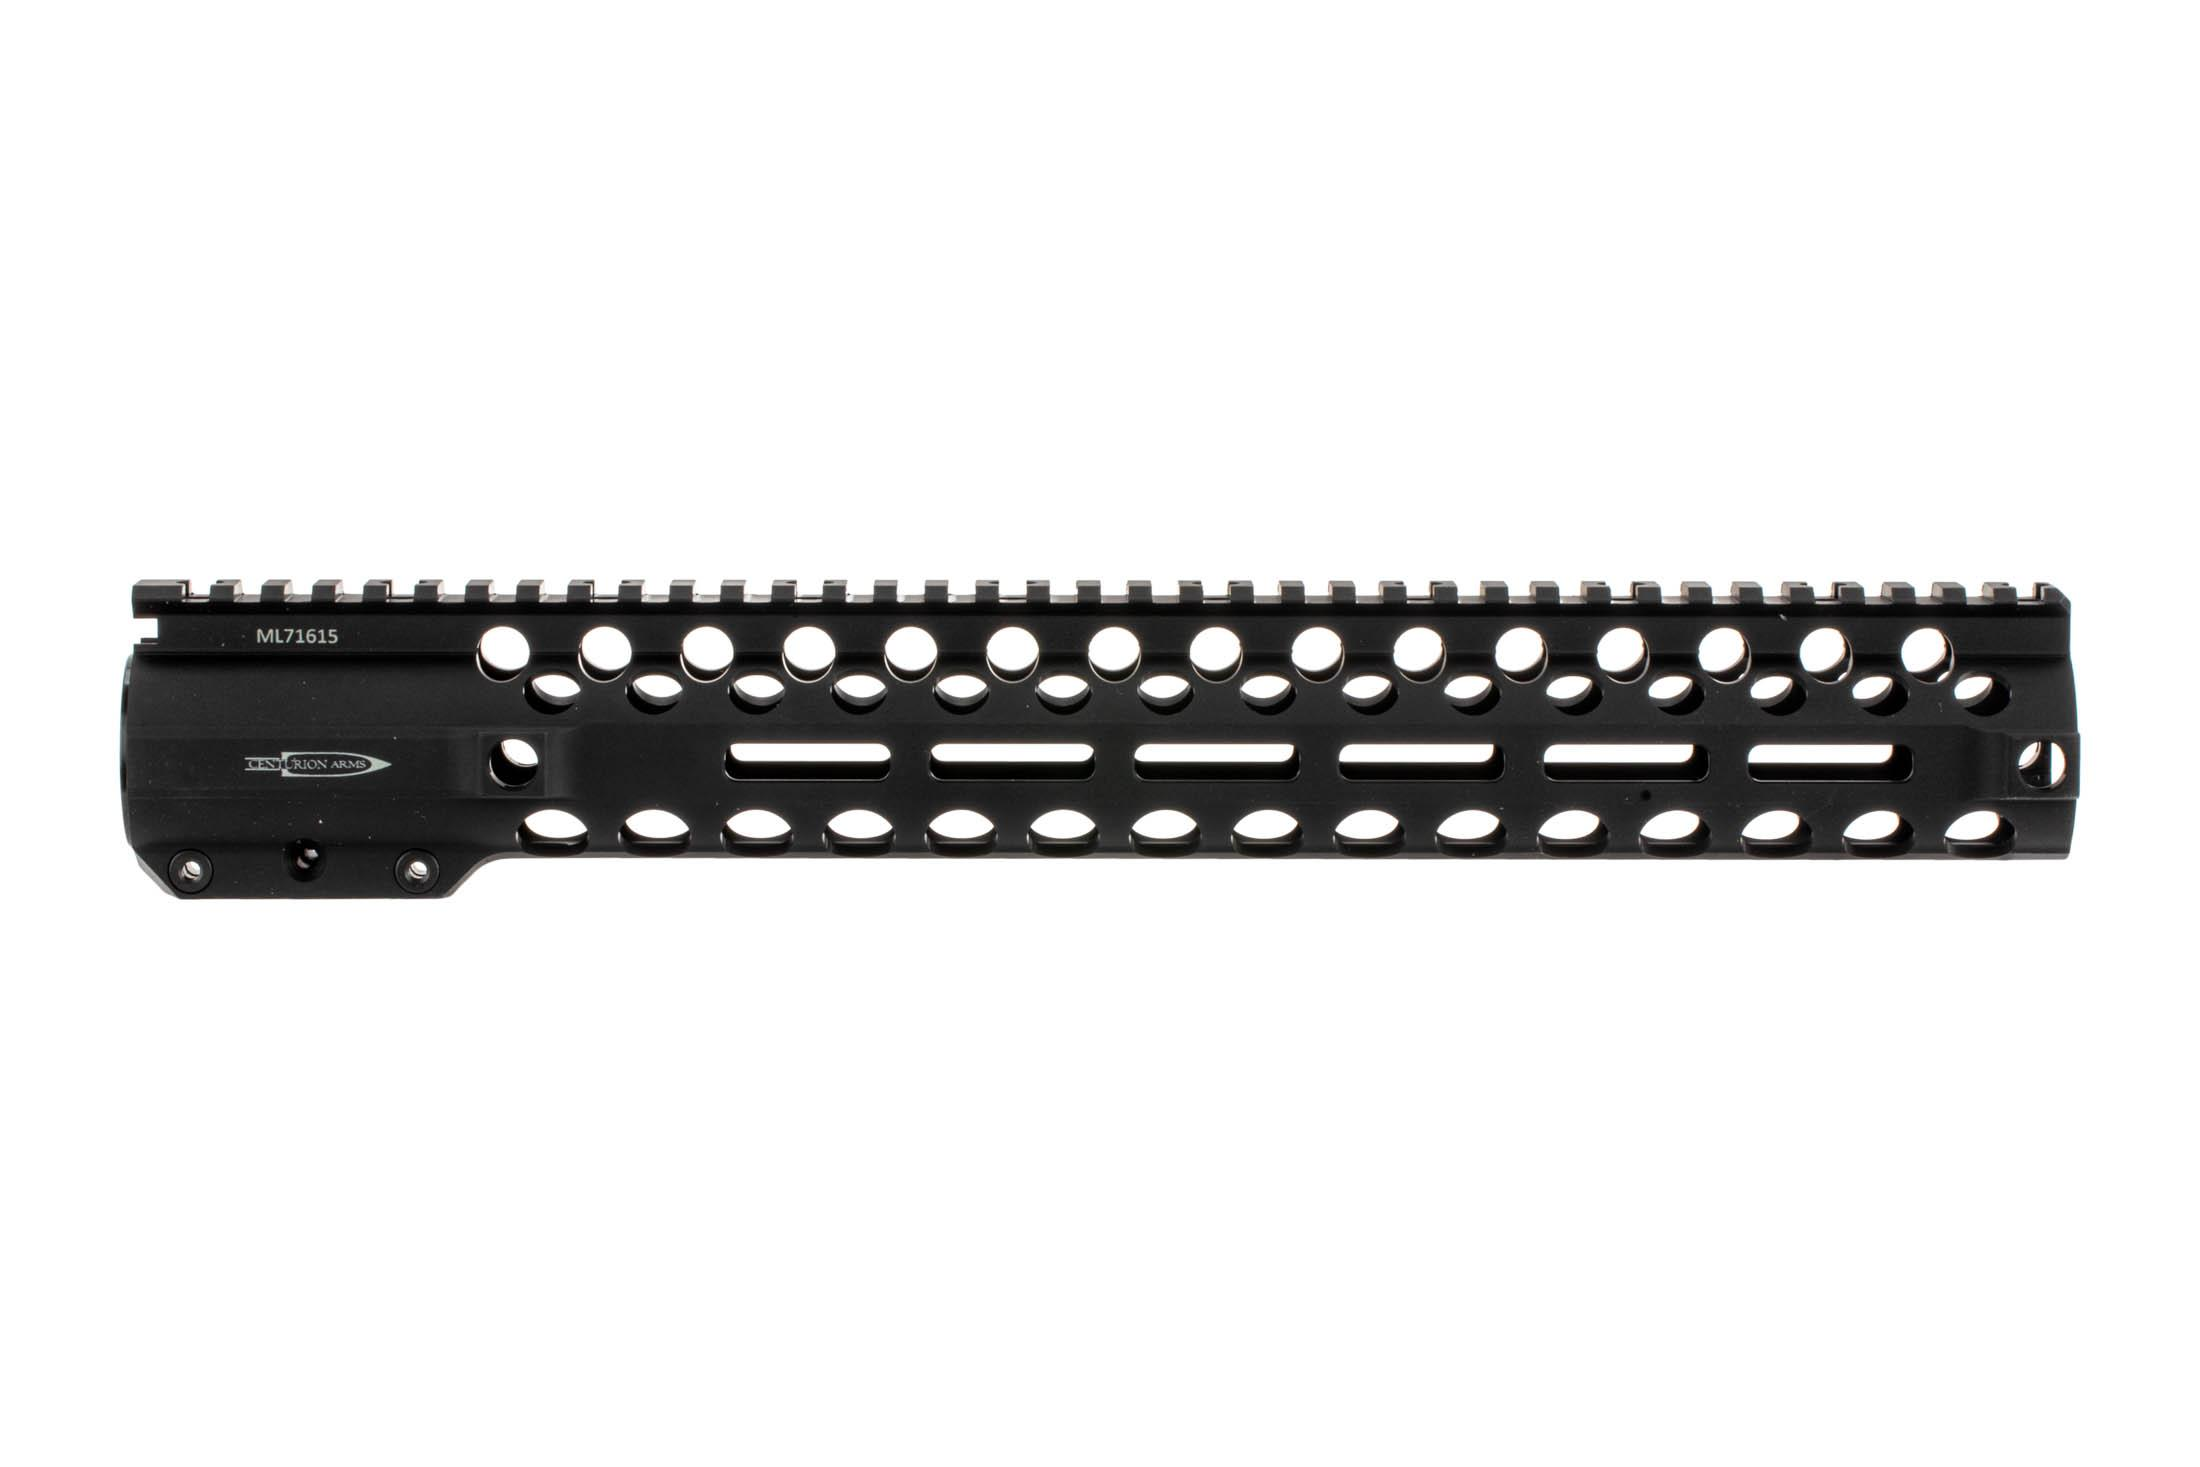 The Centurion Arms CMR 762 Free float handguard features M-LOK attachment slots